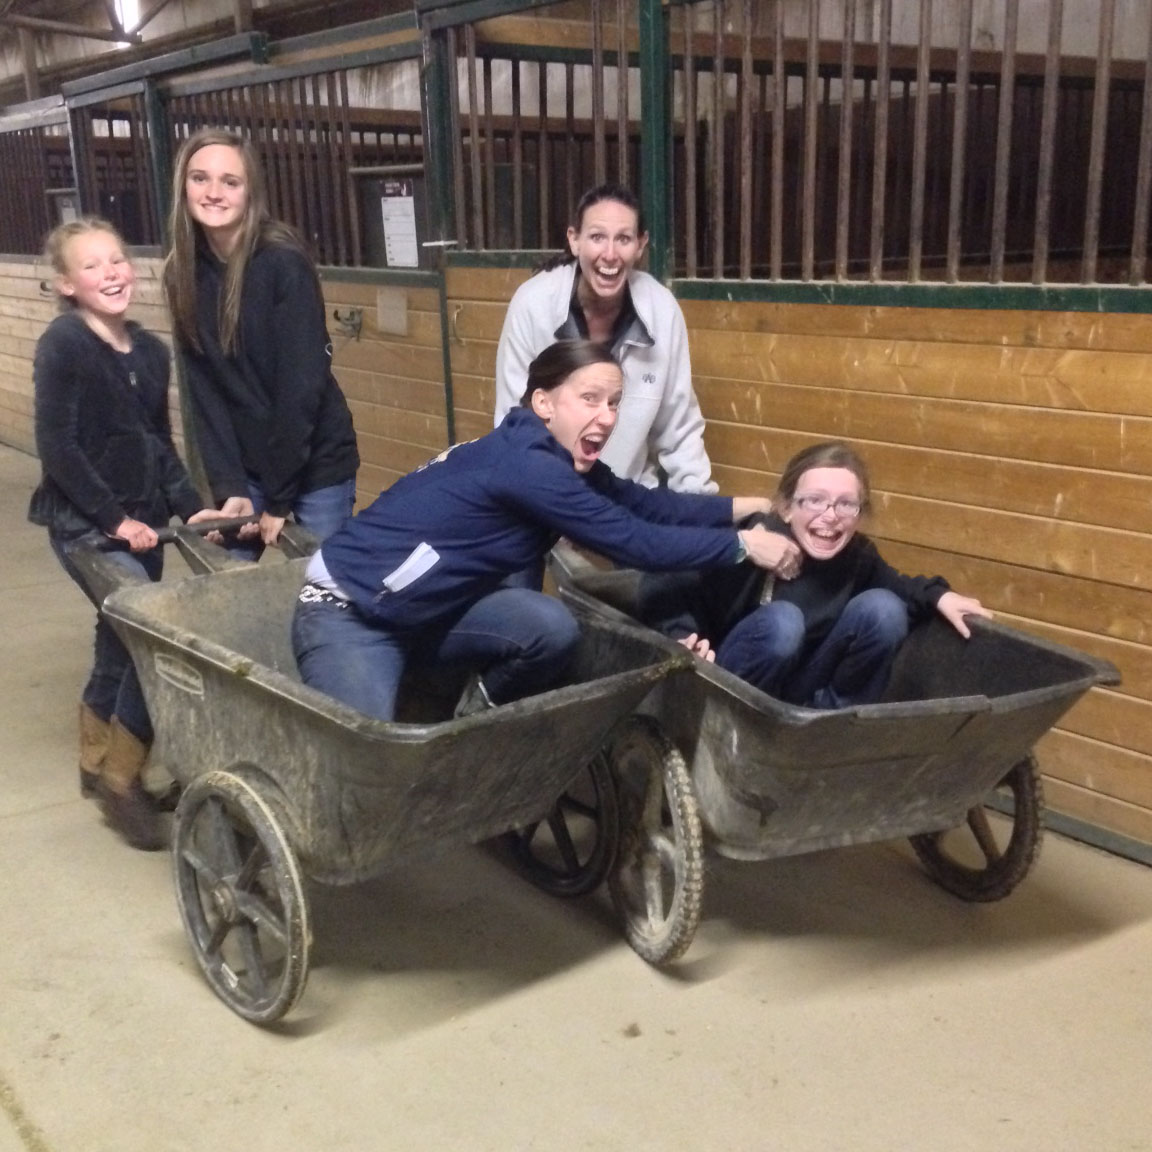 Finished the day up with a wheelbarrow race :-D